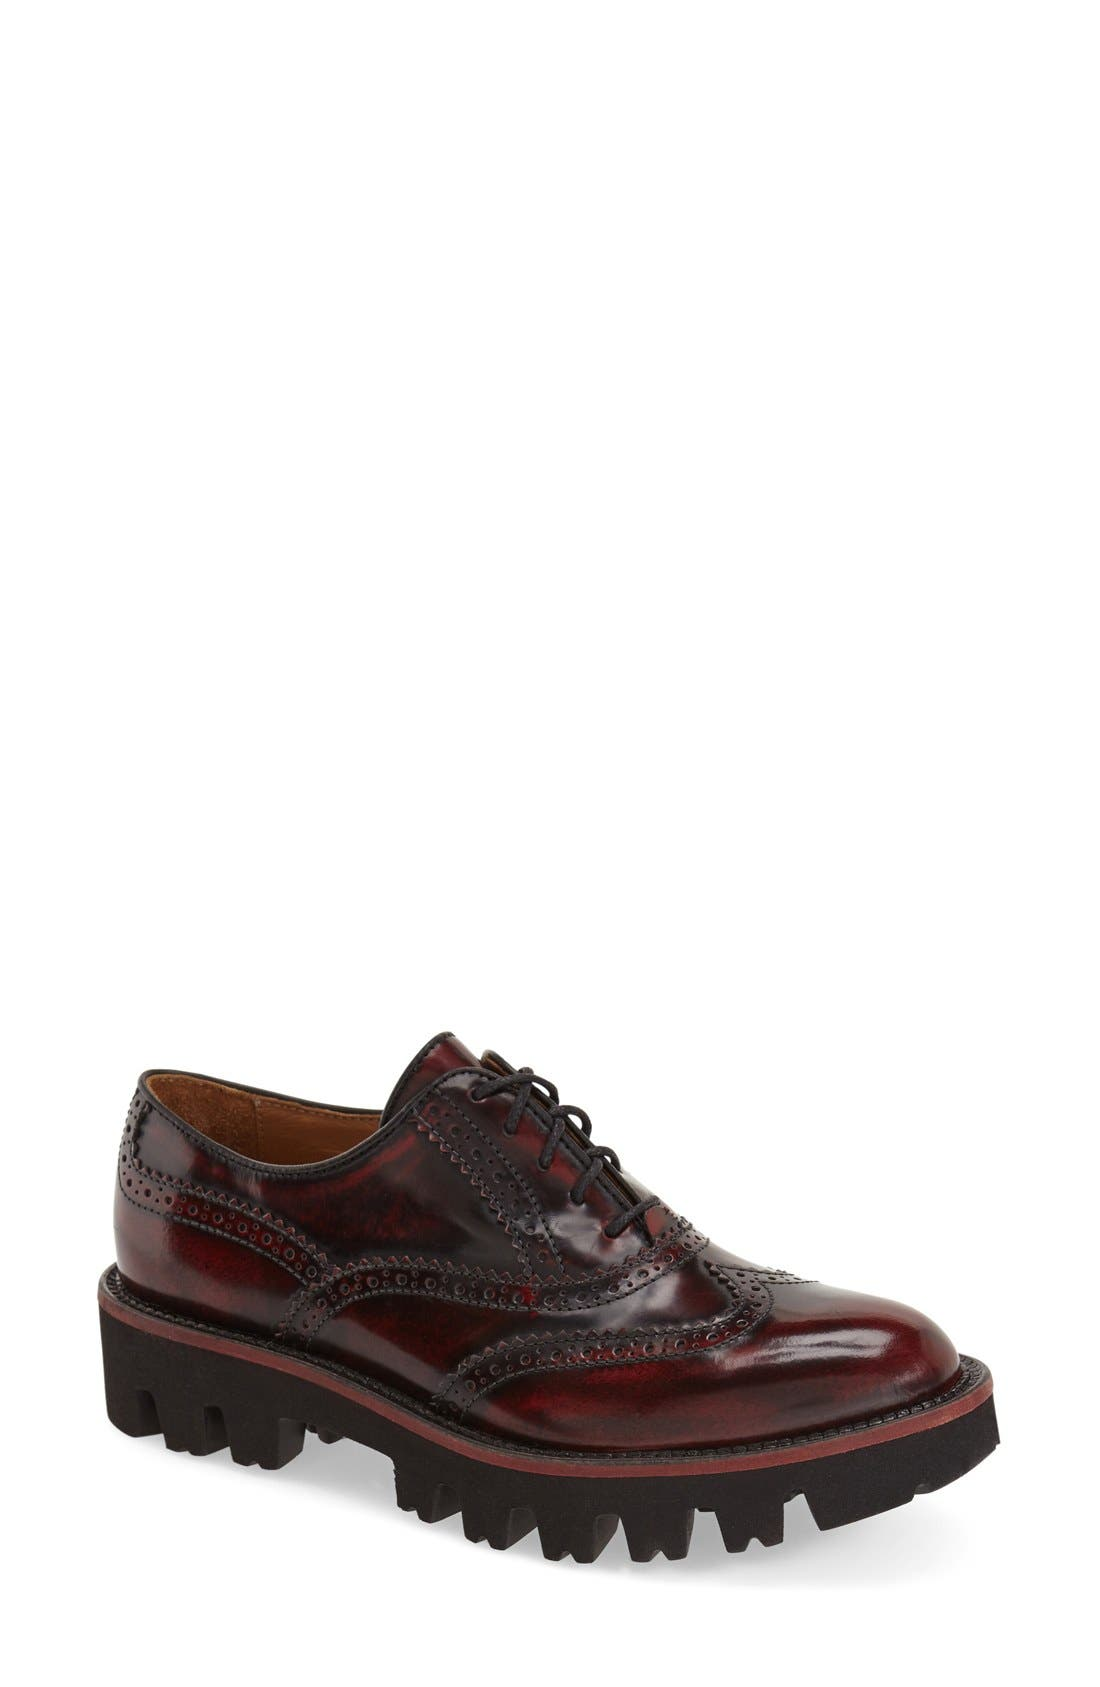 Main Image - Rokail Wingtip Oxford (Women)